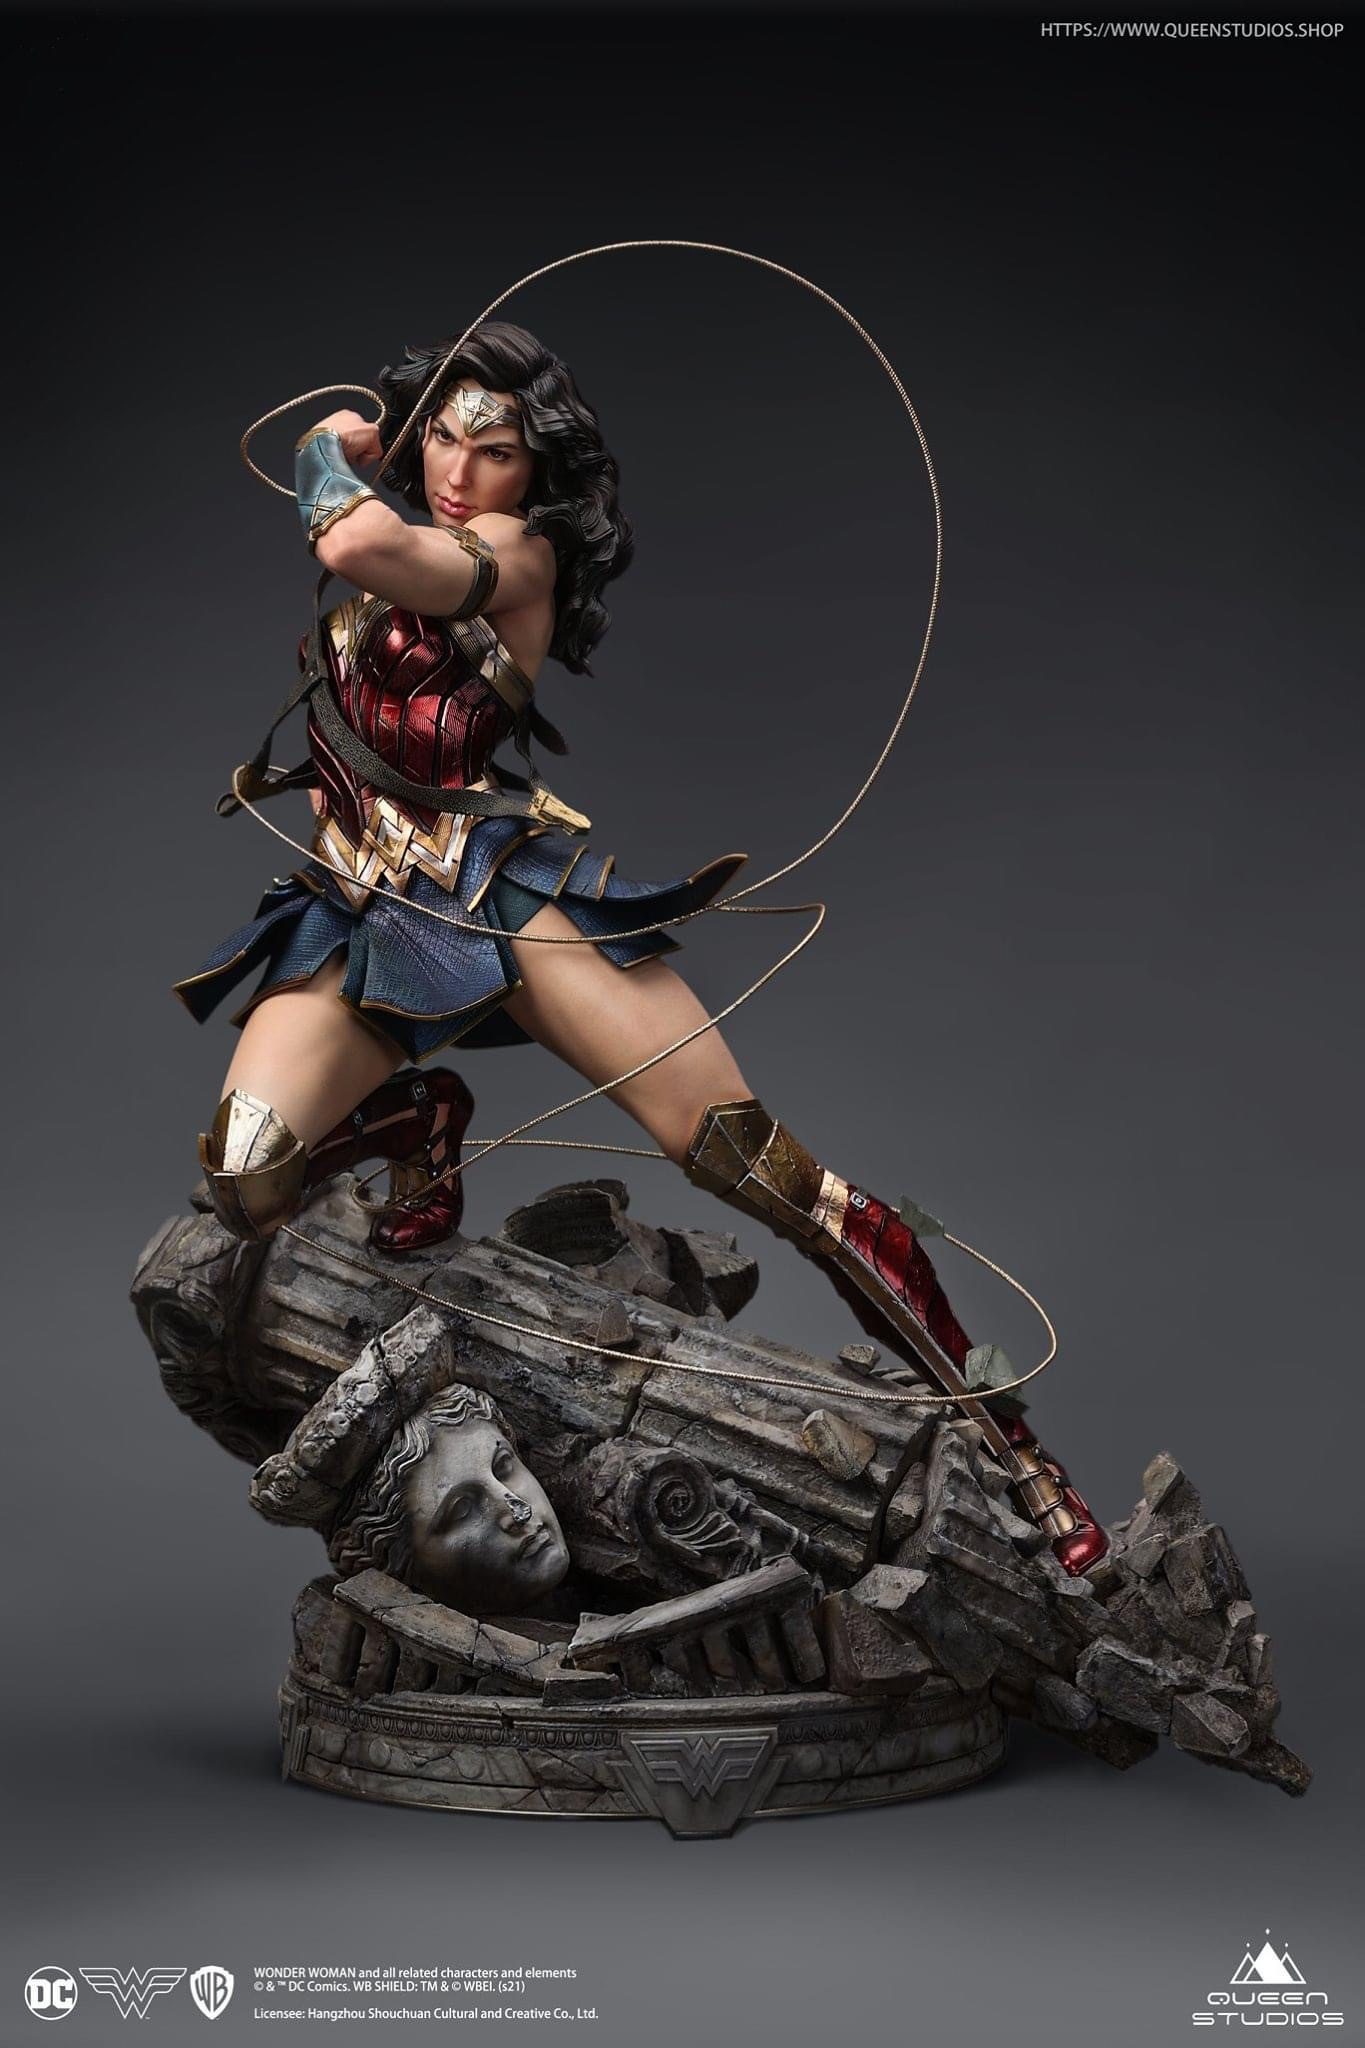 WonderWomen Queen Studio (มัดจำ)